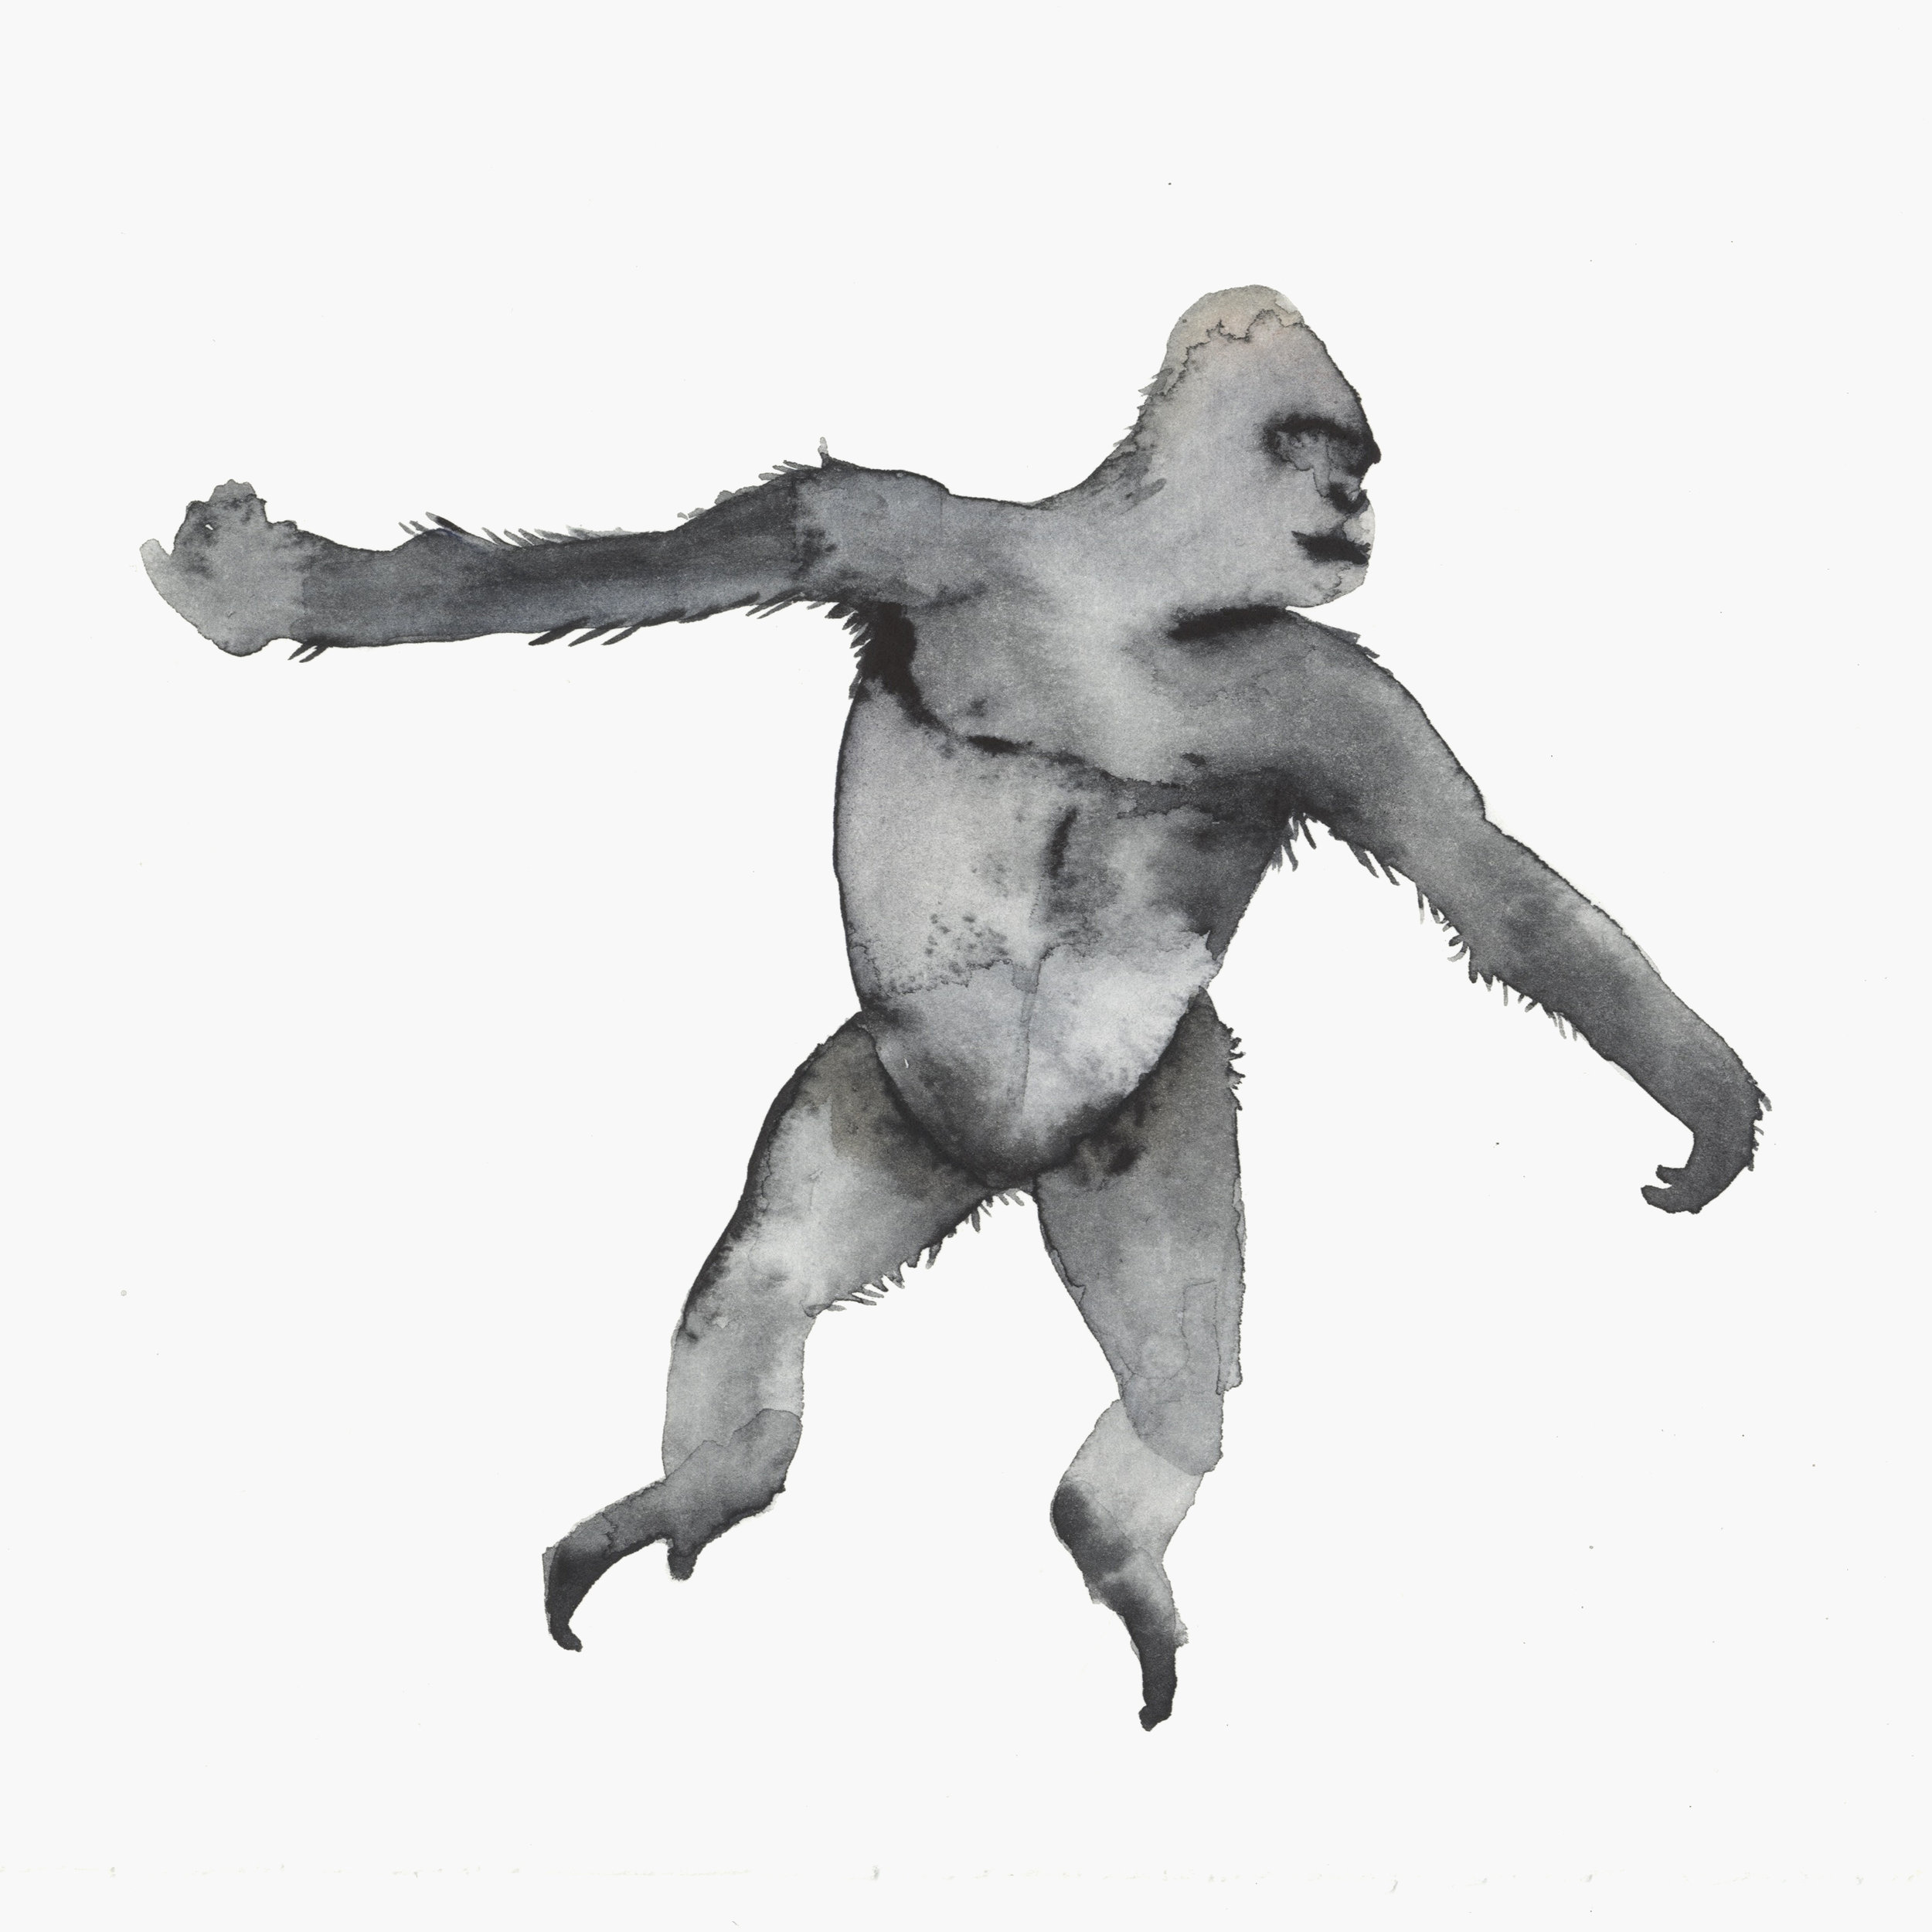 Gorilla moves by Lindsay McDonagh